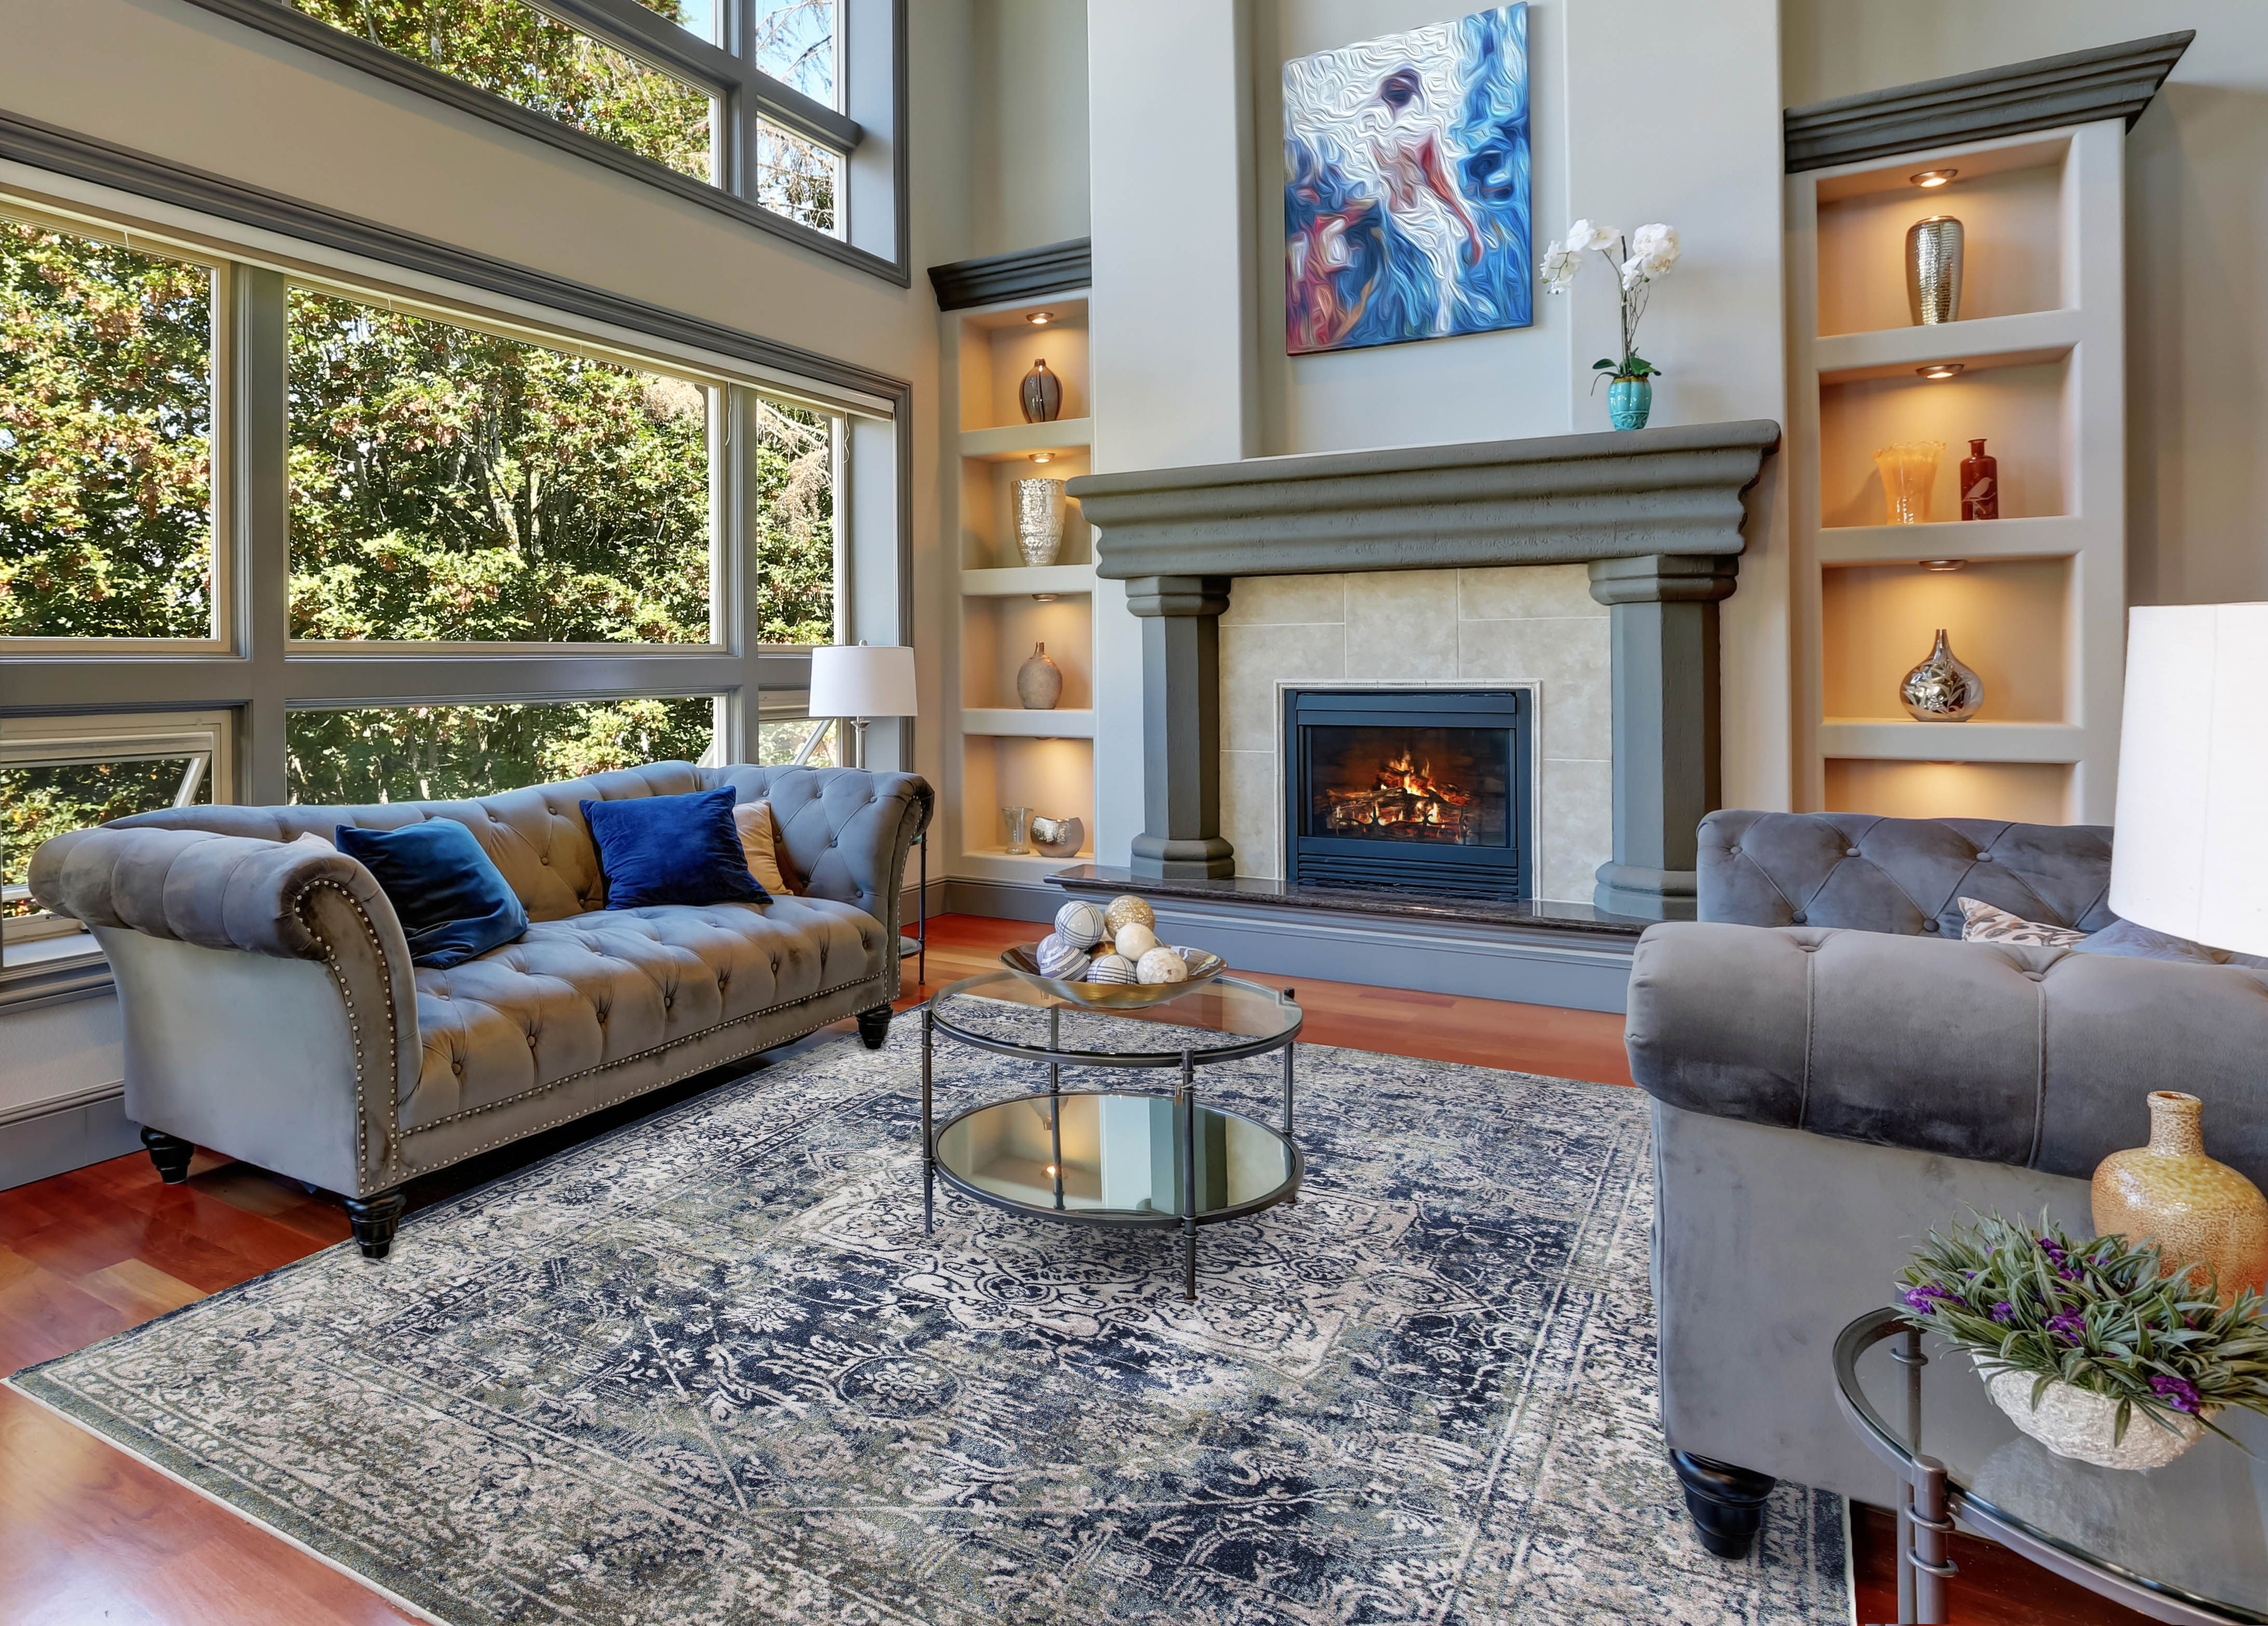 37+ Large living room rugs for sale ideas